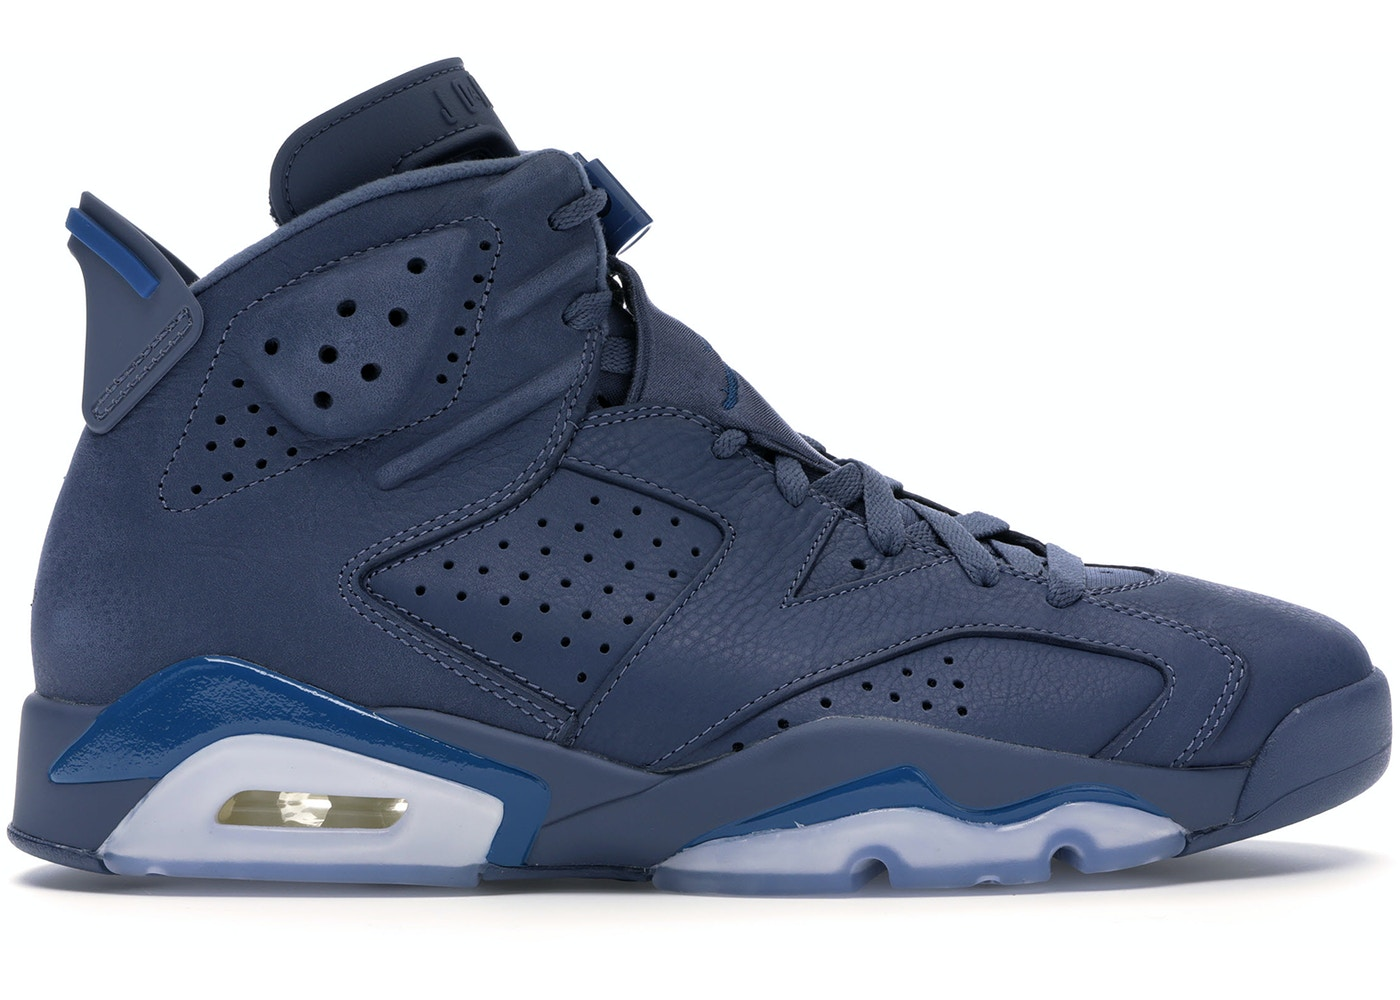 d09016e21691fb Jordan 6 Retro Diffused Blue - 384664-400